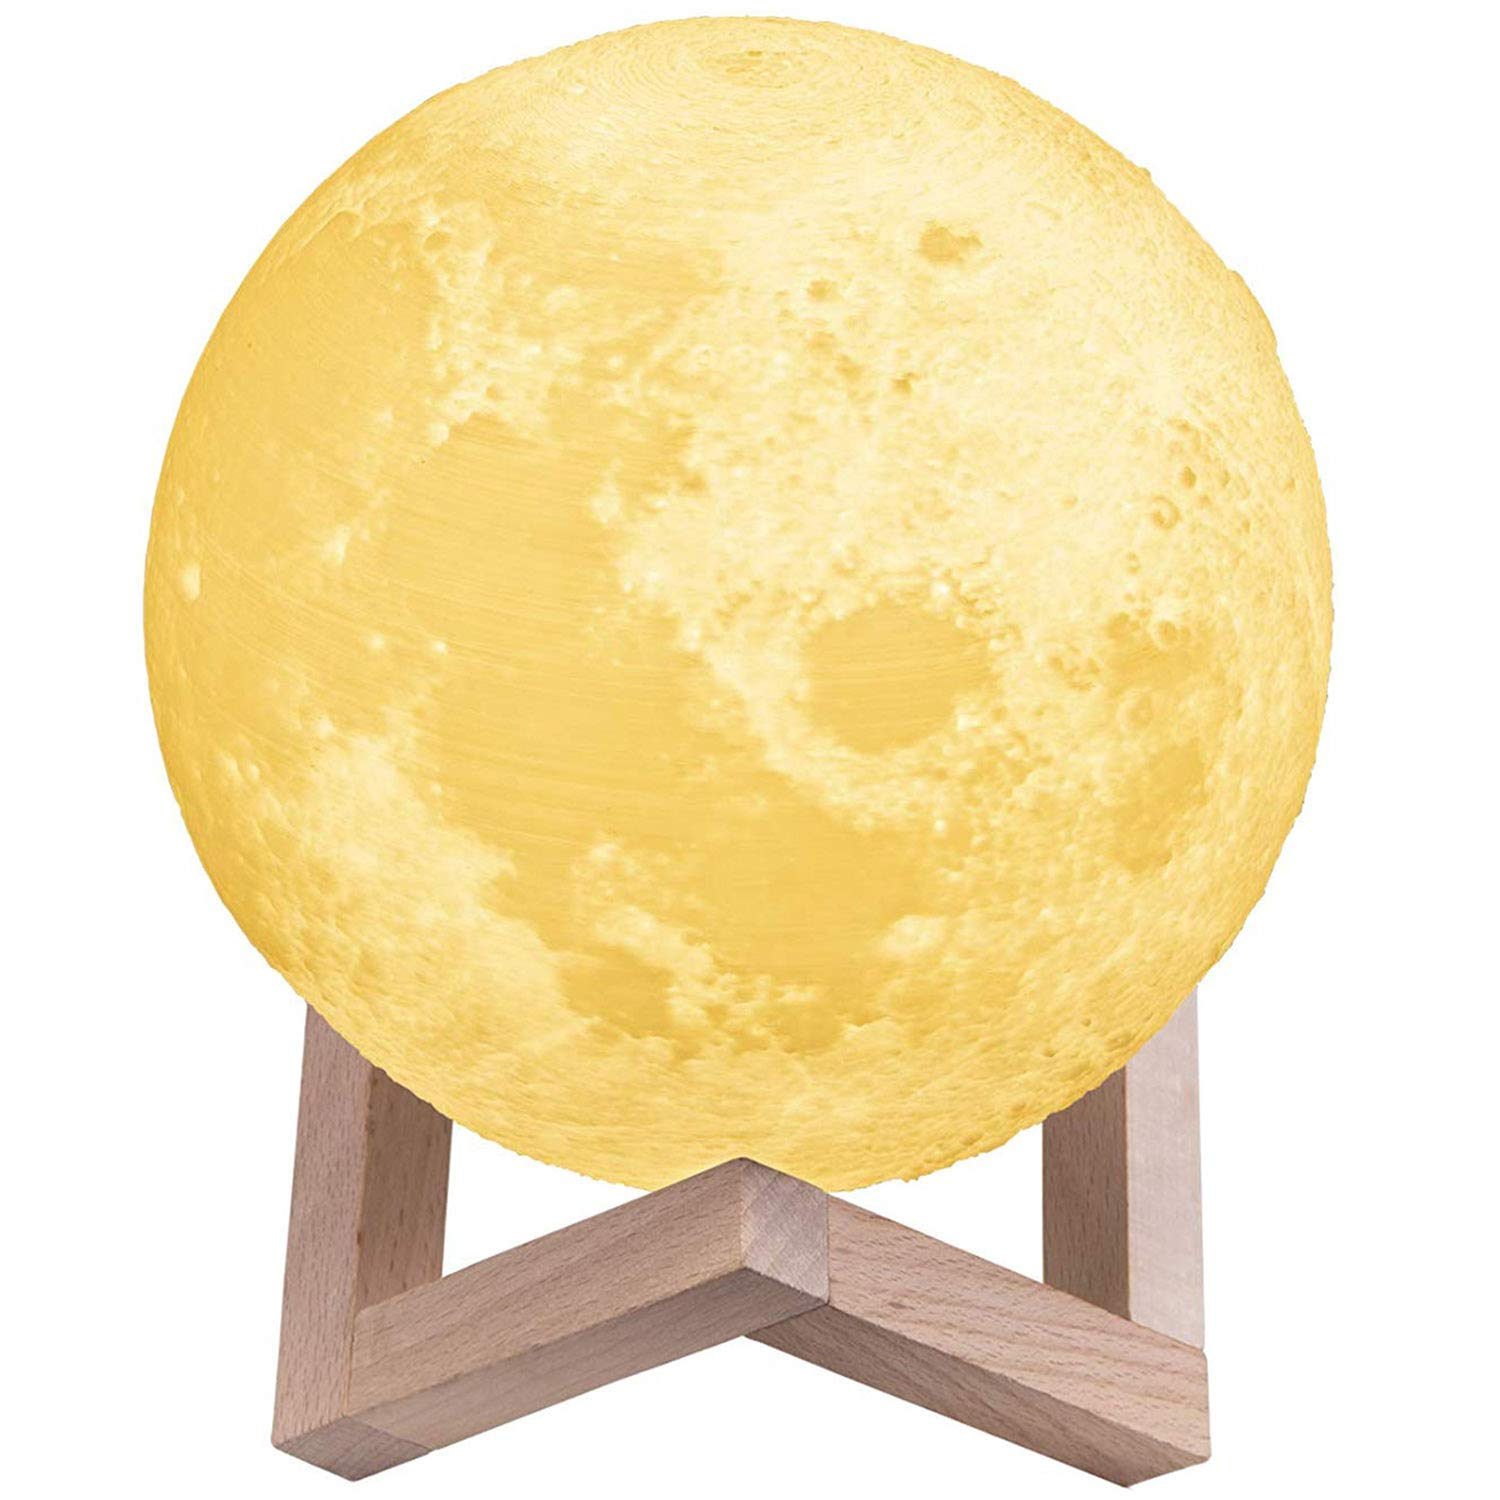 Touch Control 15cm TaoTronics 3D Printed Moon Light Warm White /& Cool White Moon Lamp Brightness Dimmable /& USB Charging Night Light with 3 Color Modes Warm